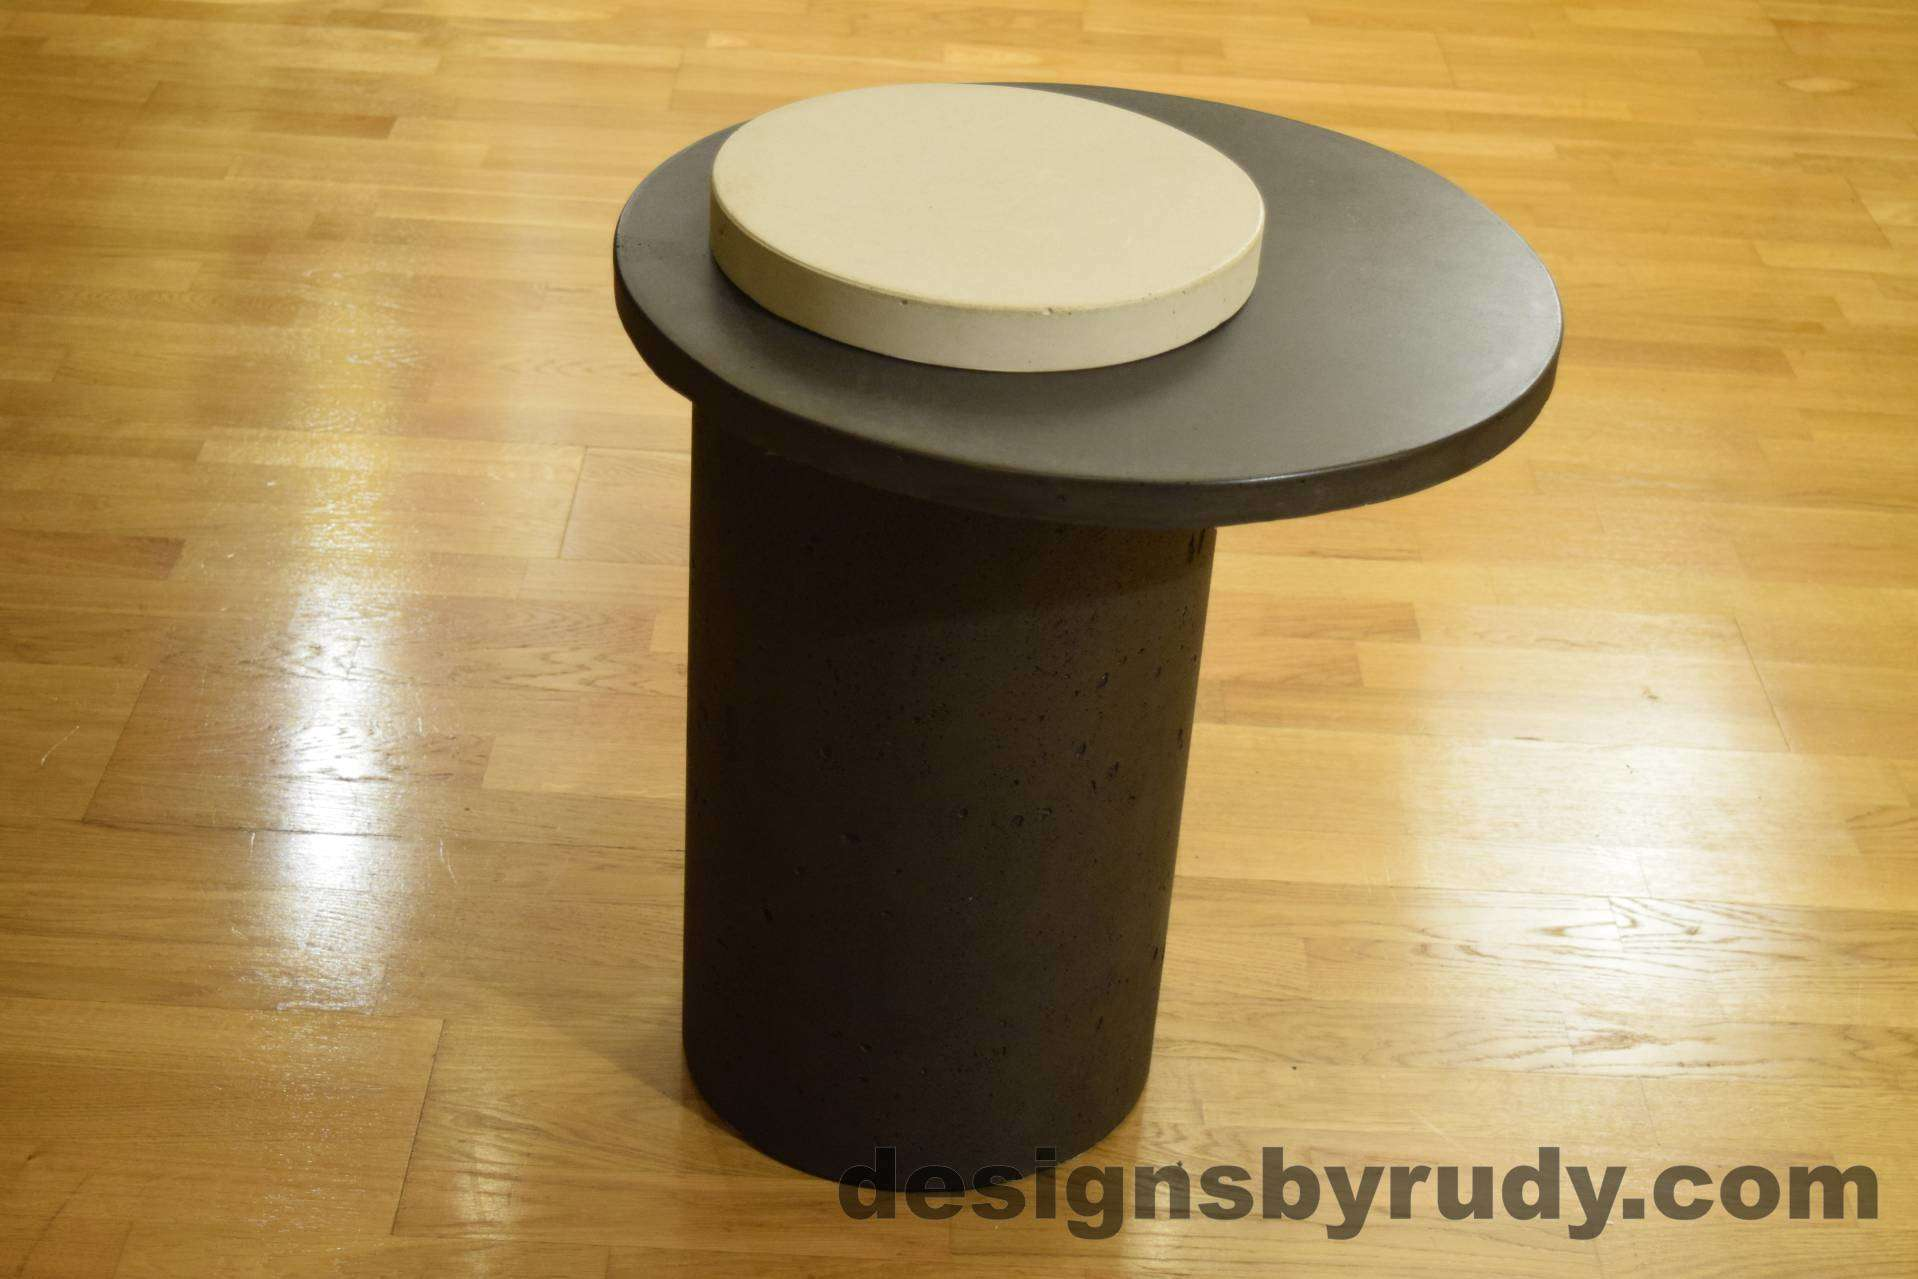 Concrete Side Table, Charcoal Top and White Cap, Pillars model, Designs by Rudy L